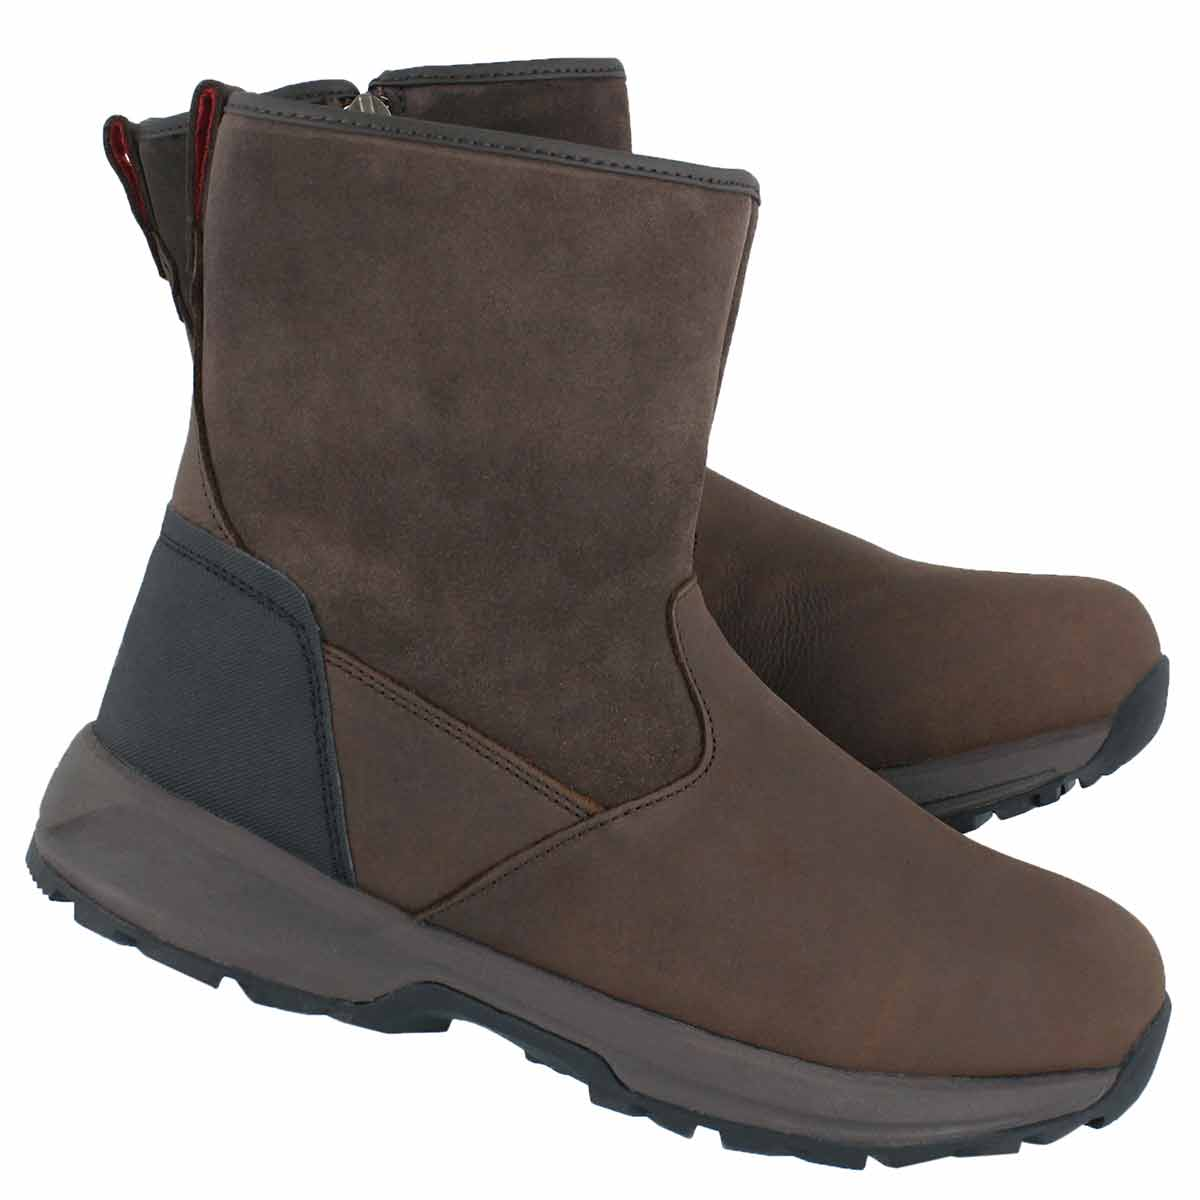 Mns Barchan stout zip up wtpf ankle boot